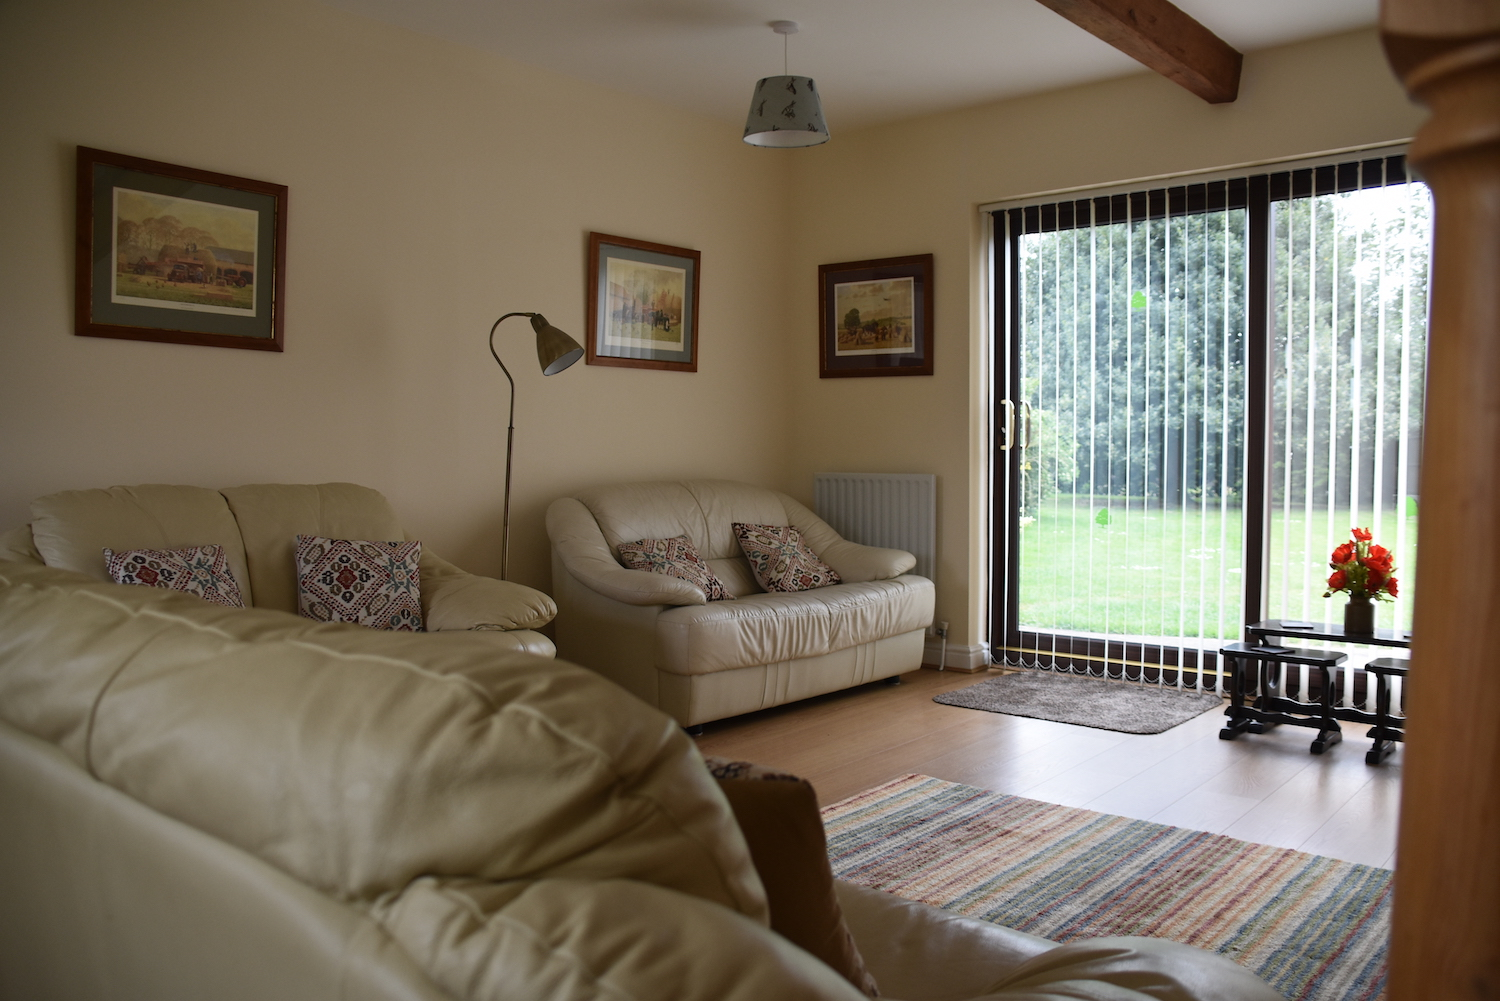 the saddle house - holiday cottage in boston lincolnshire, picture of our lounge area